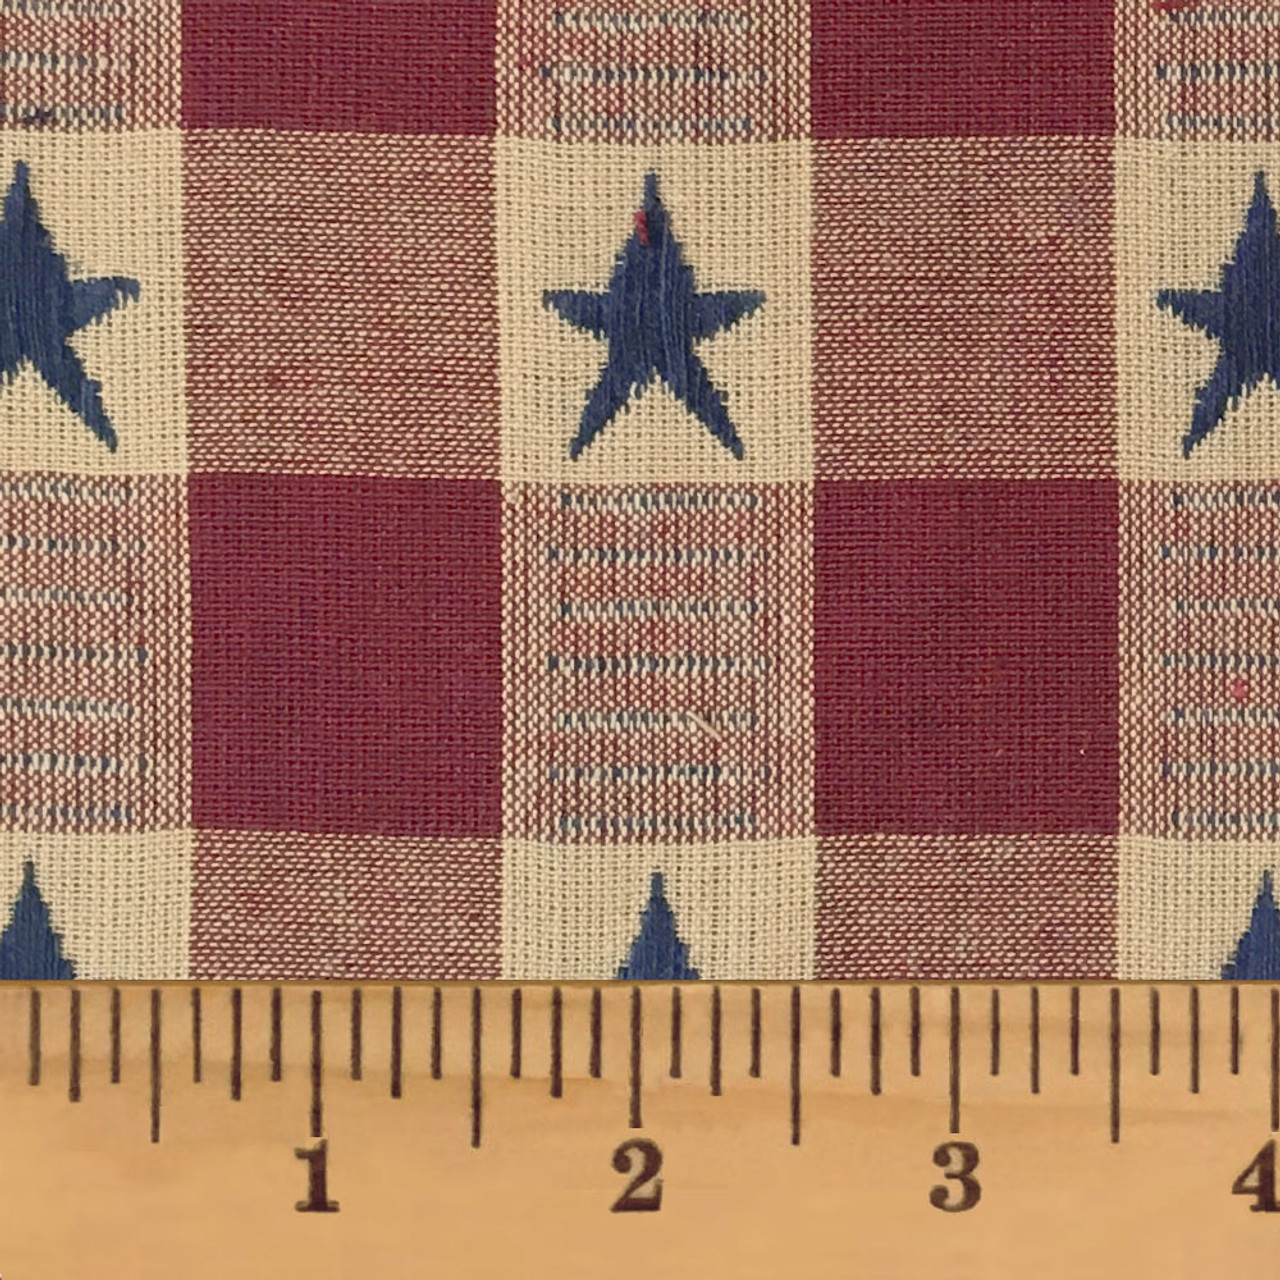 Large Star Red Dobby Homespun Cotton Fabric